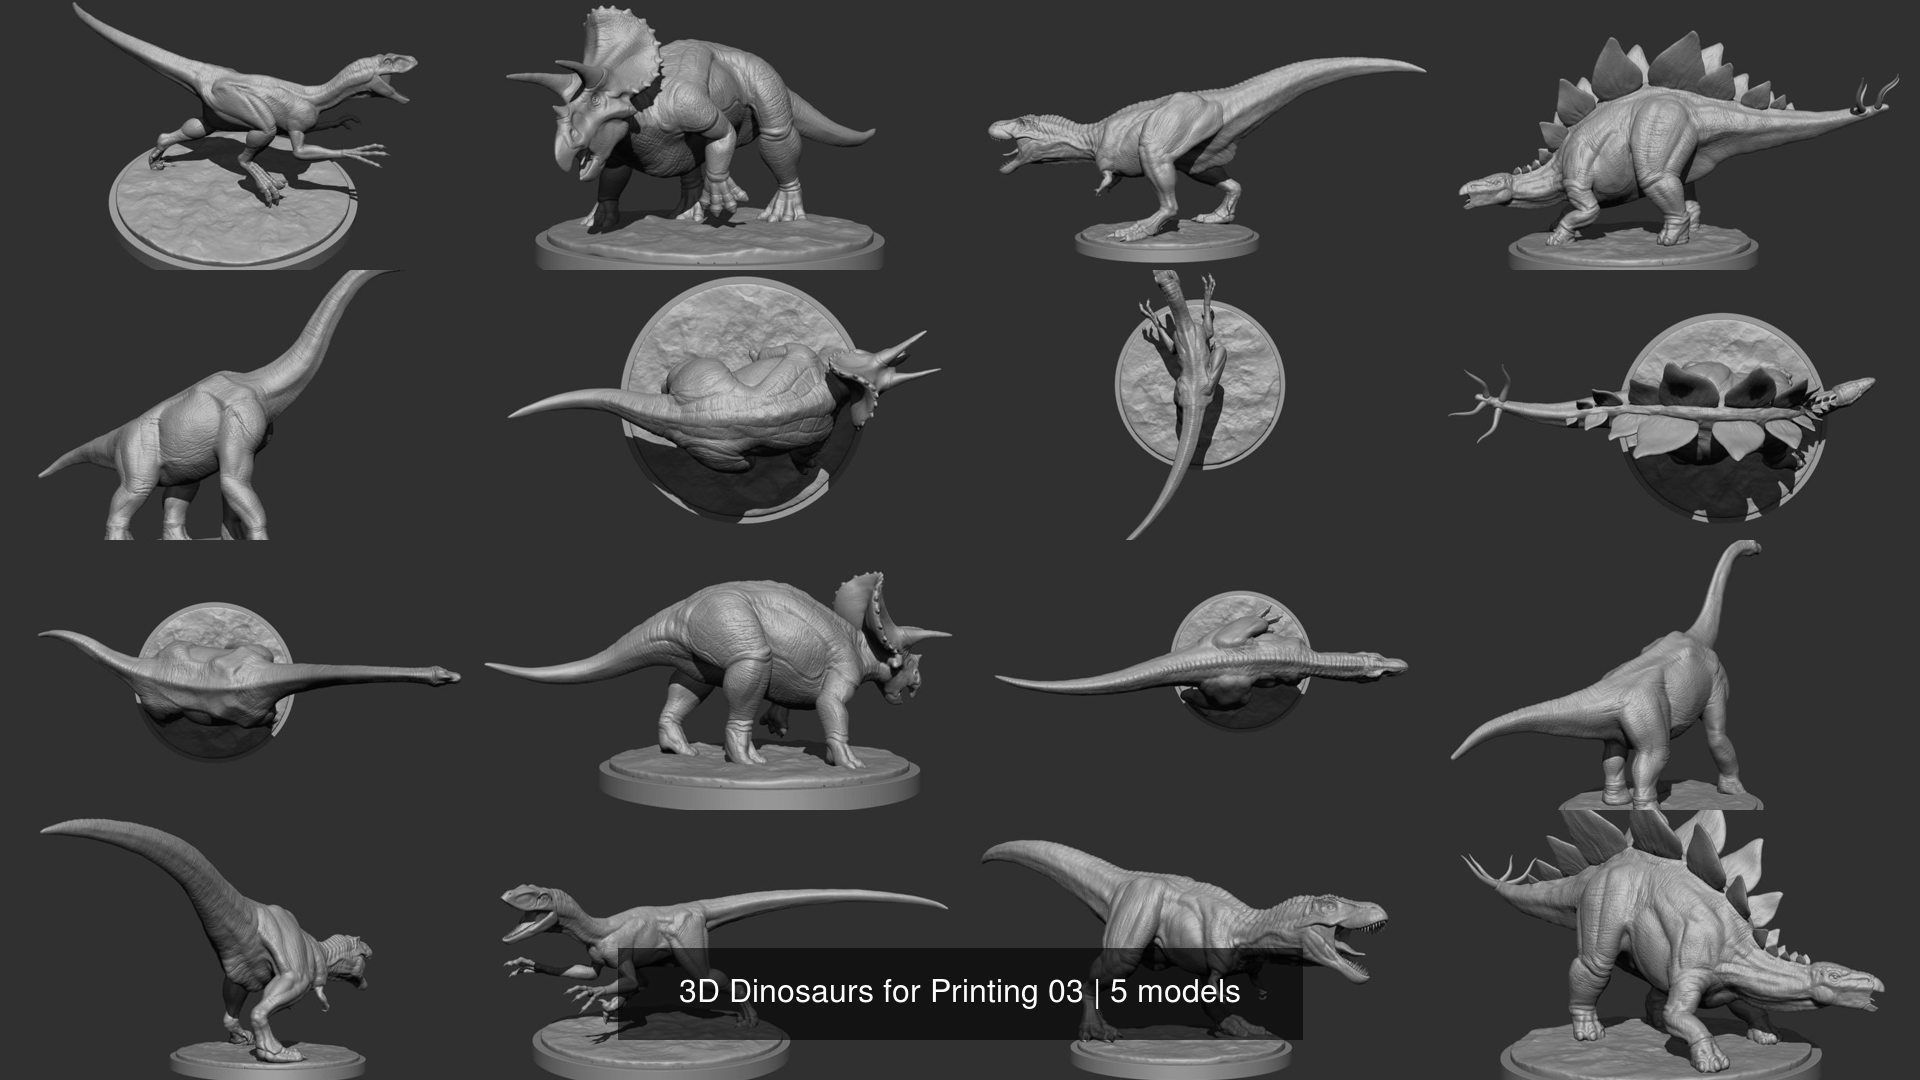 3D Dinosaurs for Printing 03